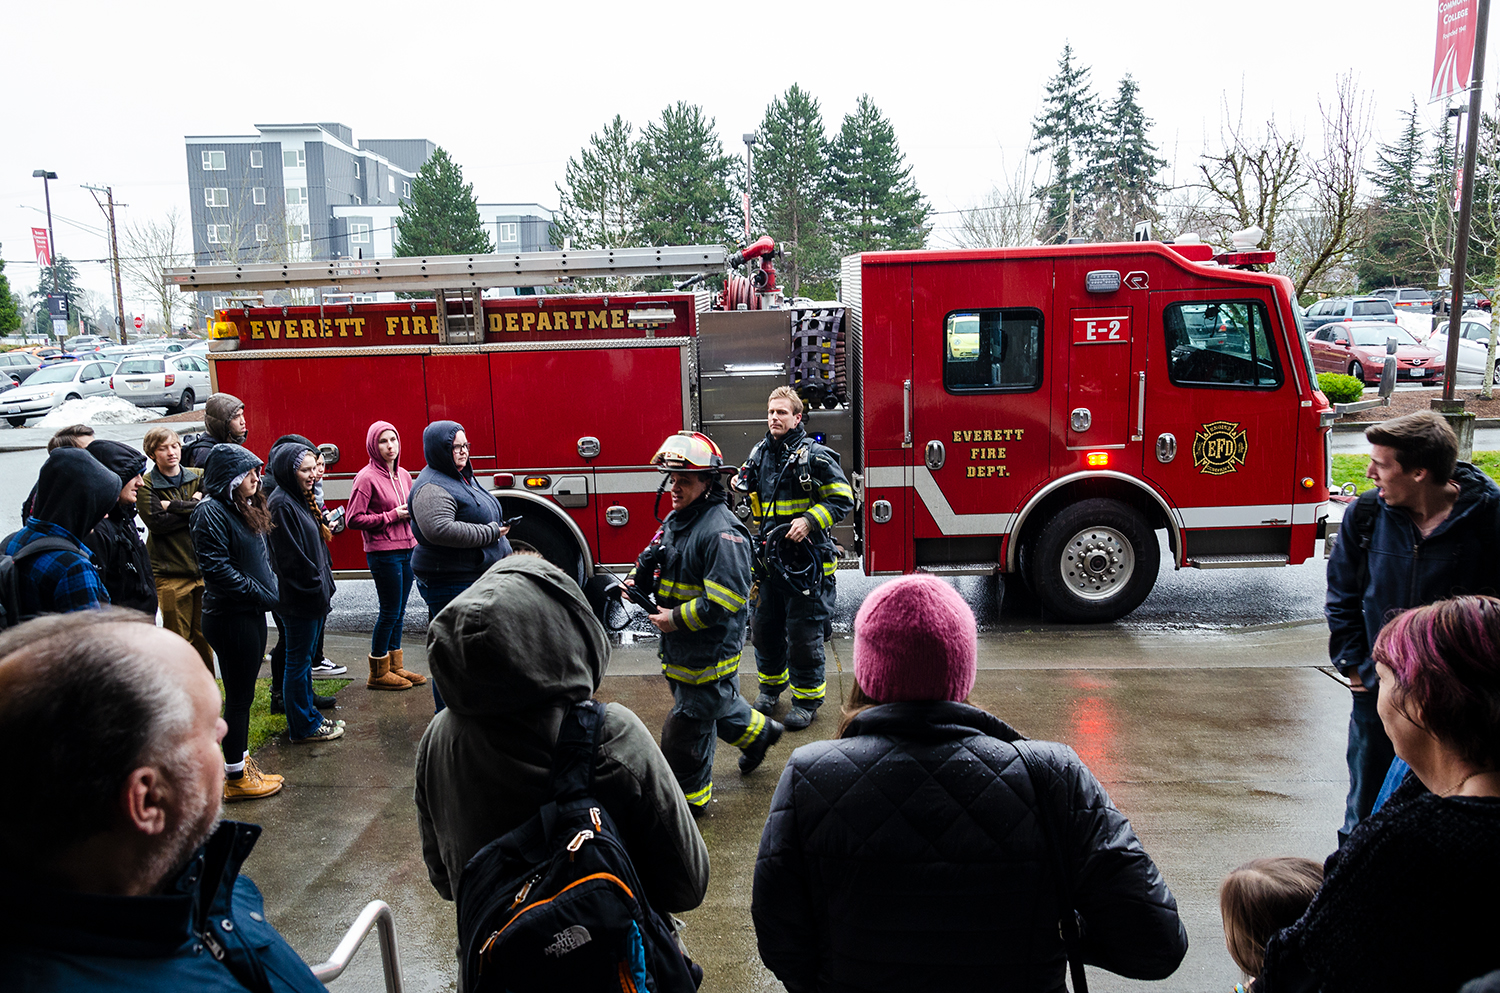 Everett firefighters responding to a smoke detector going off. Students evacuated from the building, standing outside Whitehorse Hall.